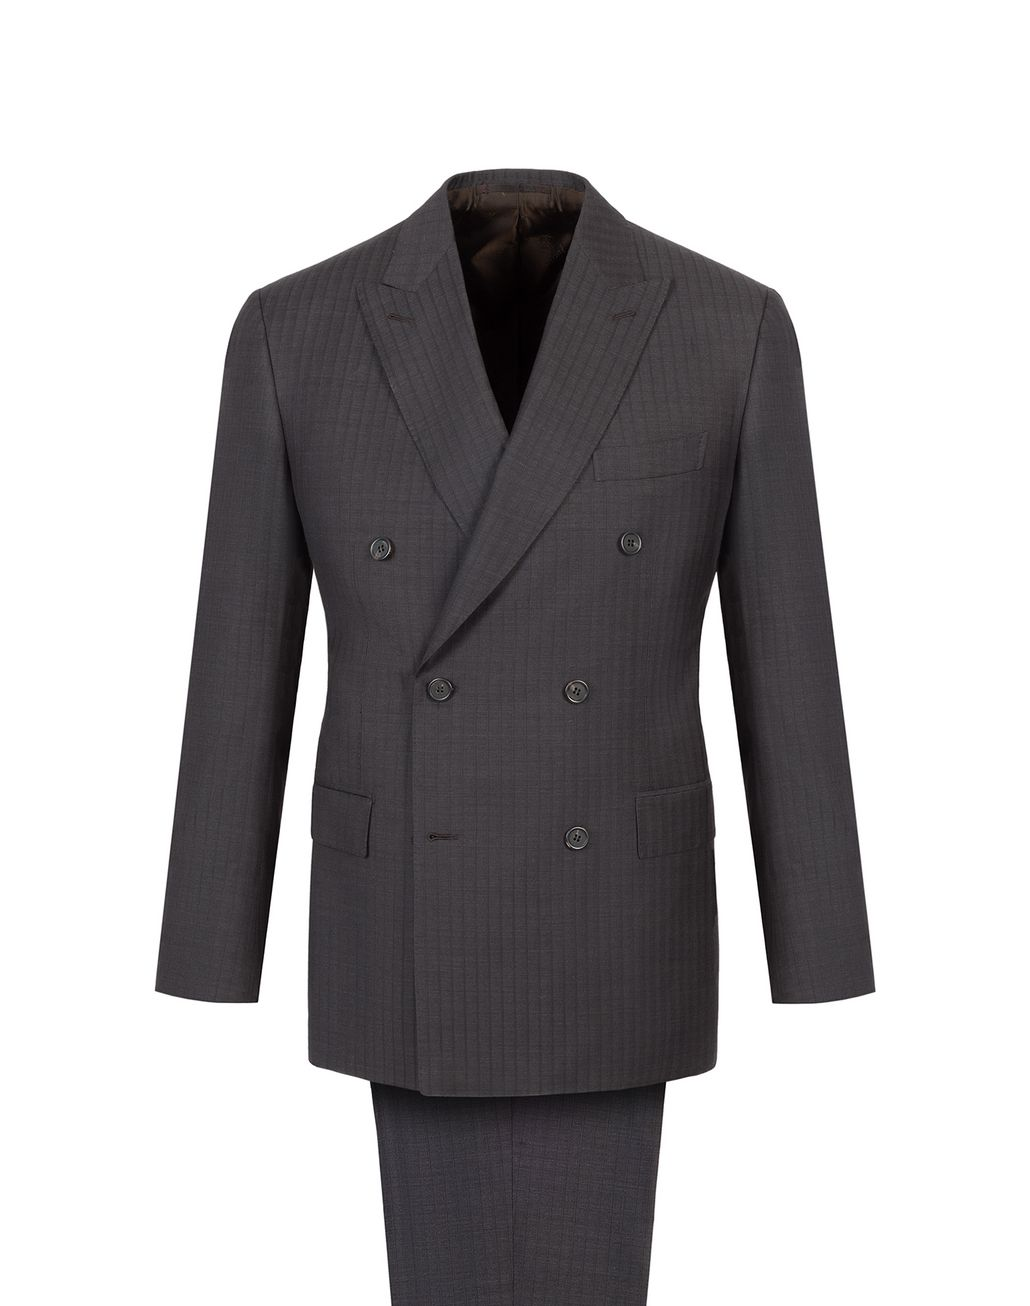 BRIONI Grey and Dark Brown Striped Madison Double Breasted Suit Suits & Jackets Man f